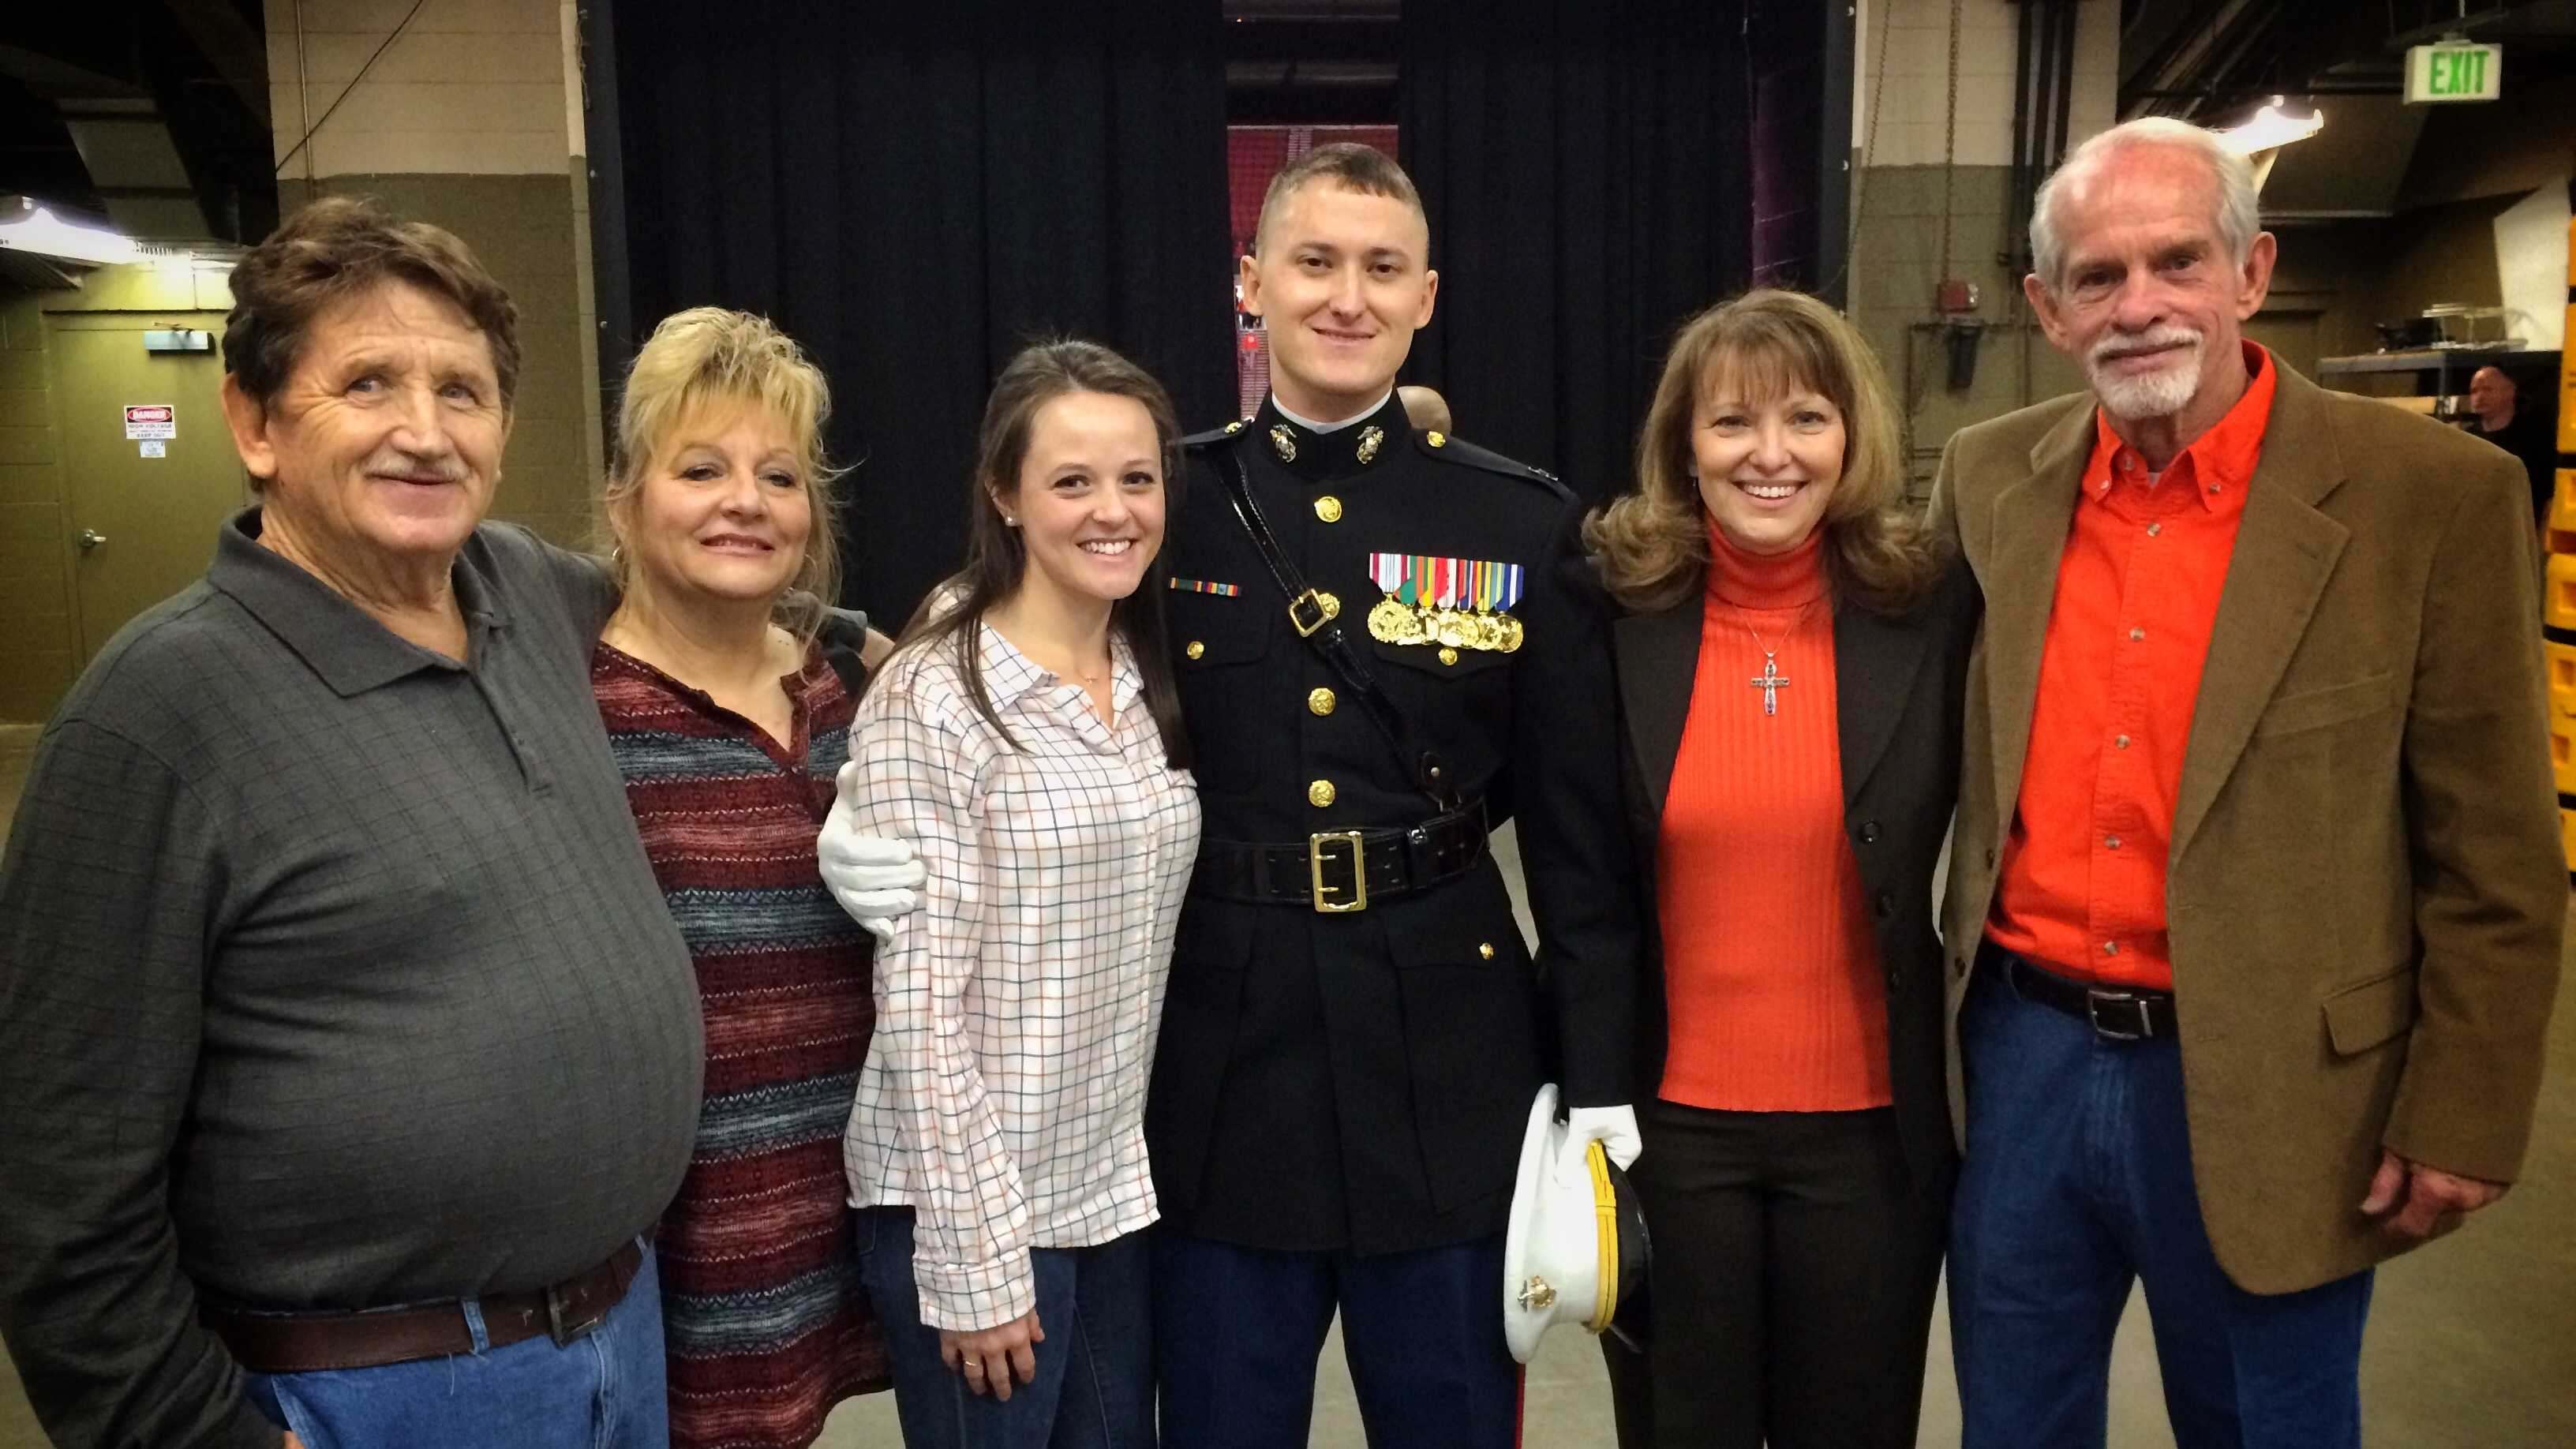 A marine surprised his family and girlfriend at a Clemson Basketball game.